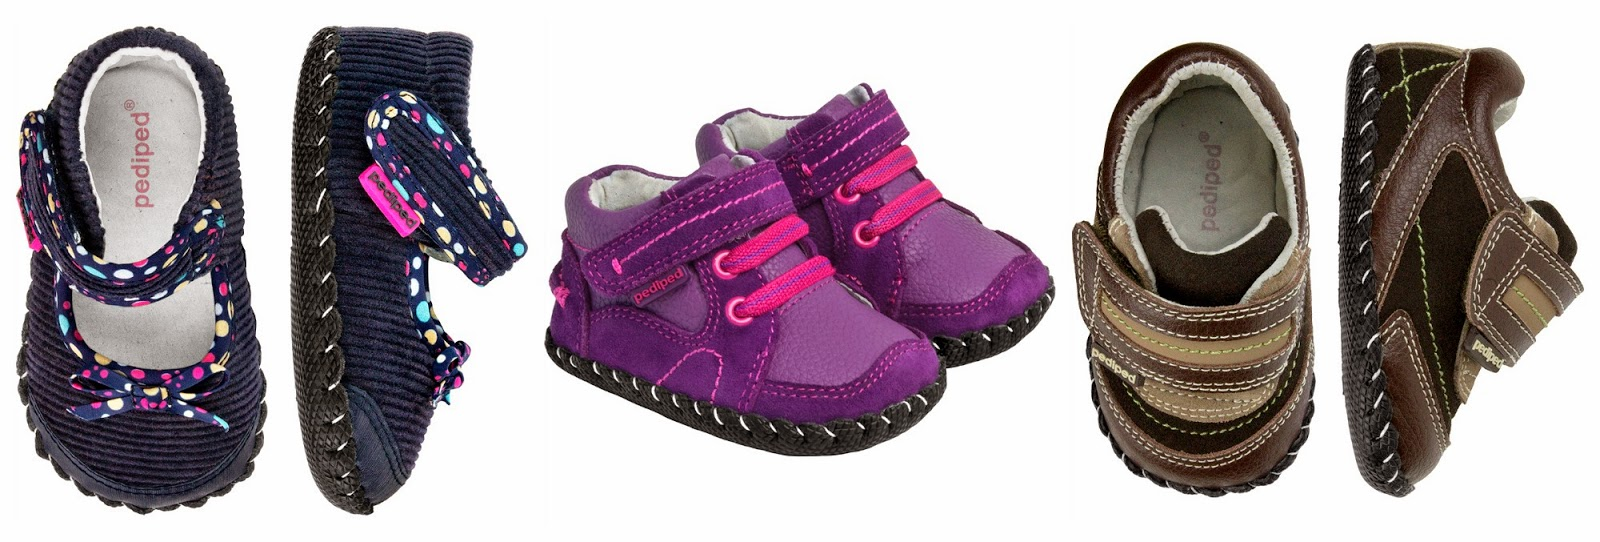 pediped originals shoes